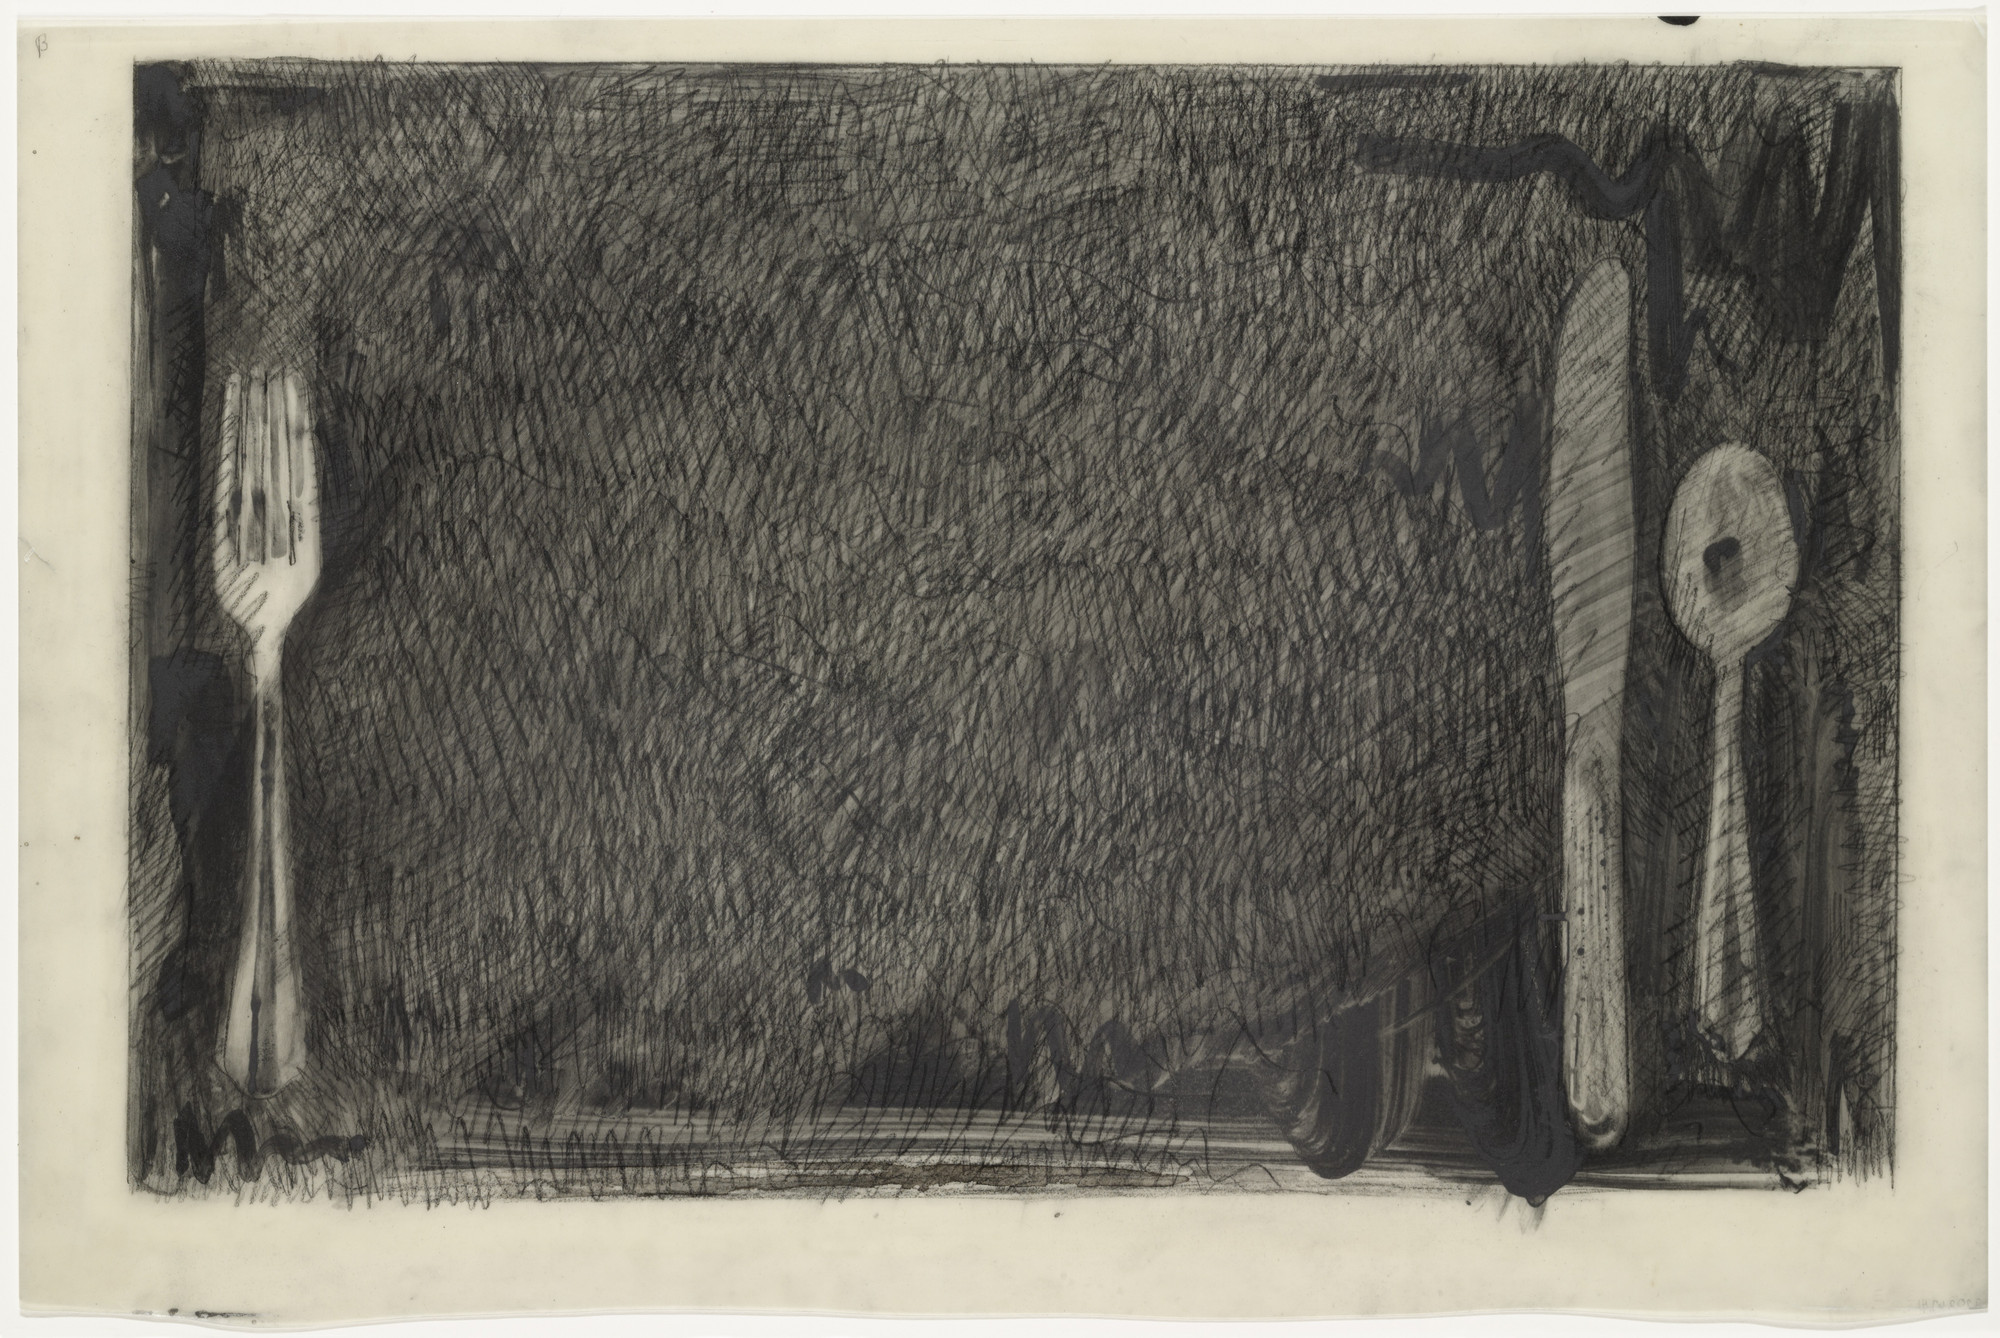 Jasper Johns. Preparatory drawing for In Memory of My Feelings. 1967